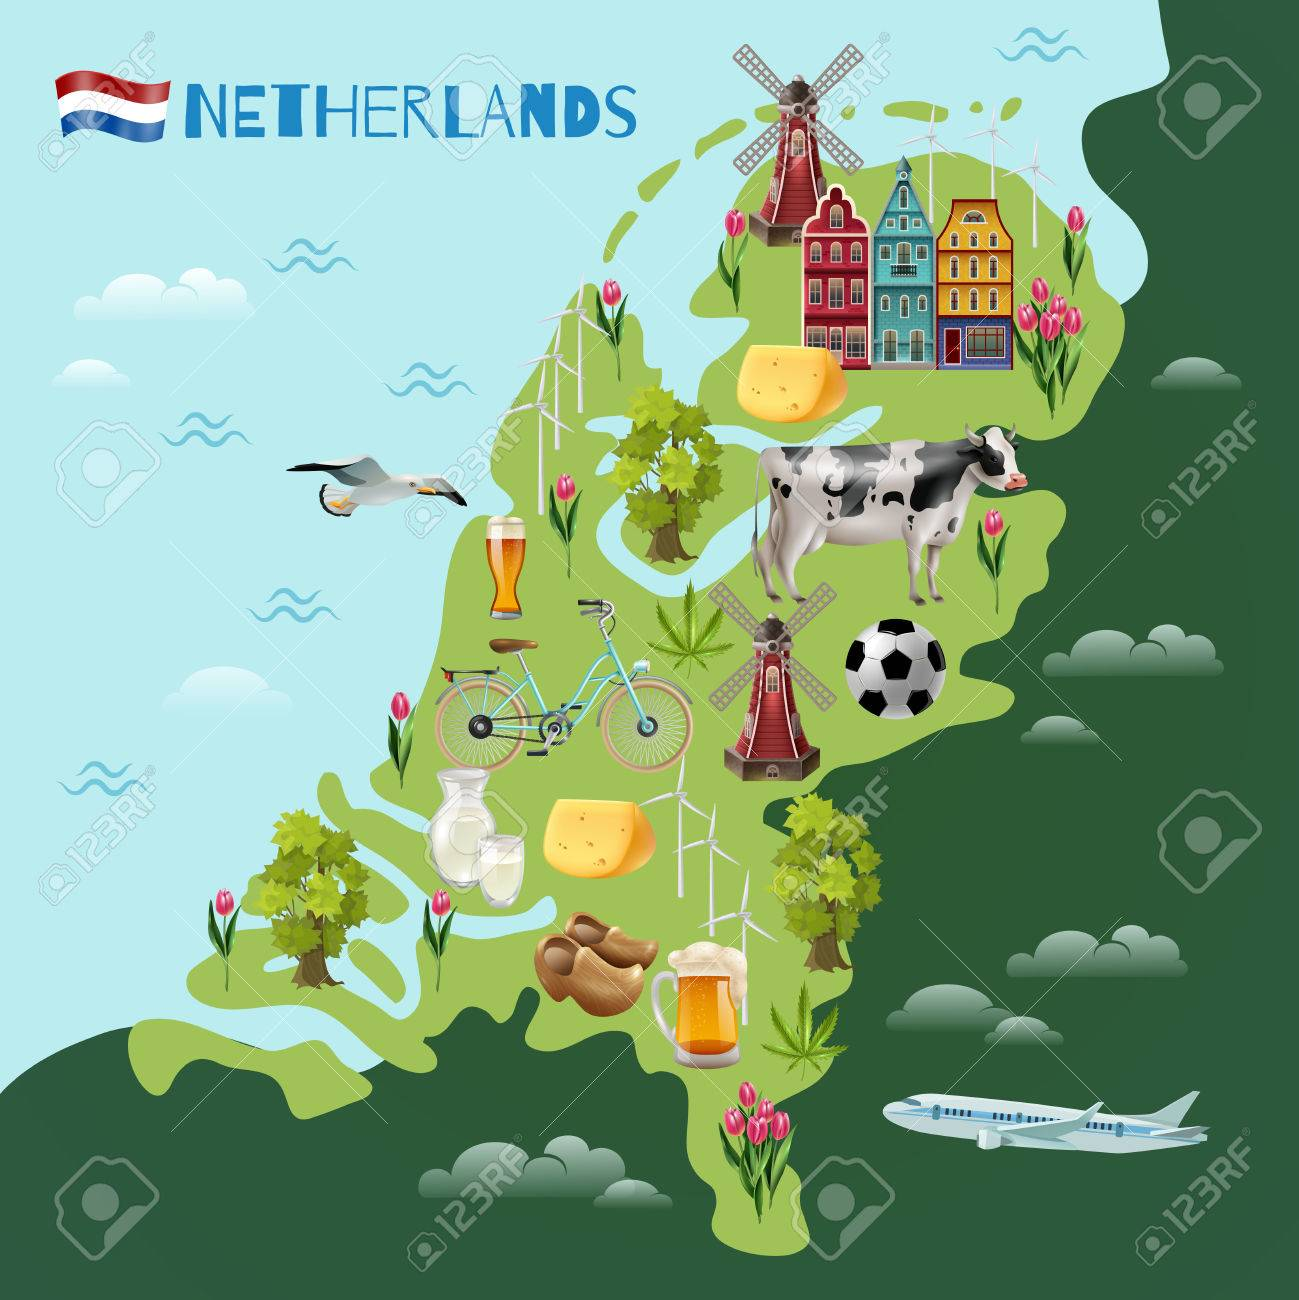 Holland travel sightseeing map with culture traditions national holland travel sightseeing map with culture traditions national cheese beer clogs tulips and windmills symbols gumiabroncs Gallery